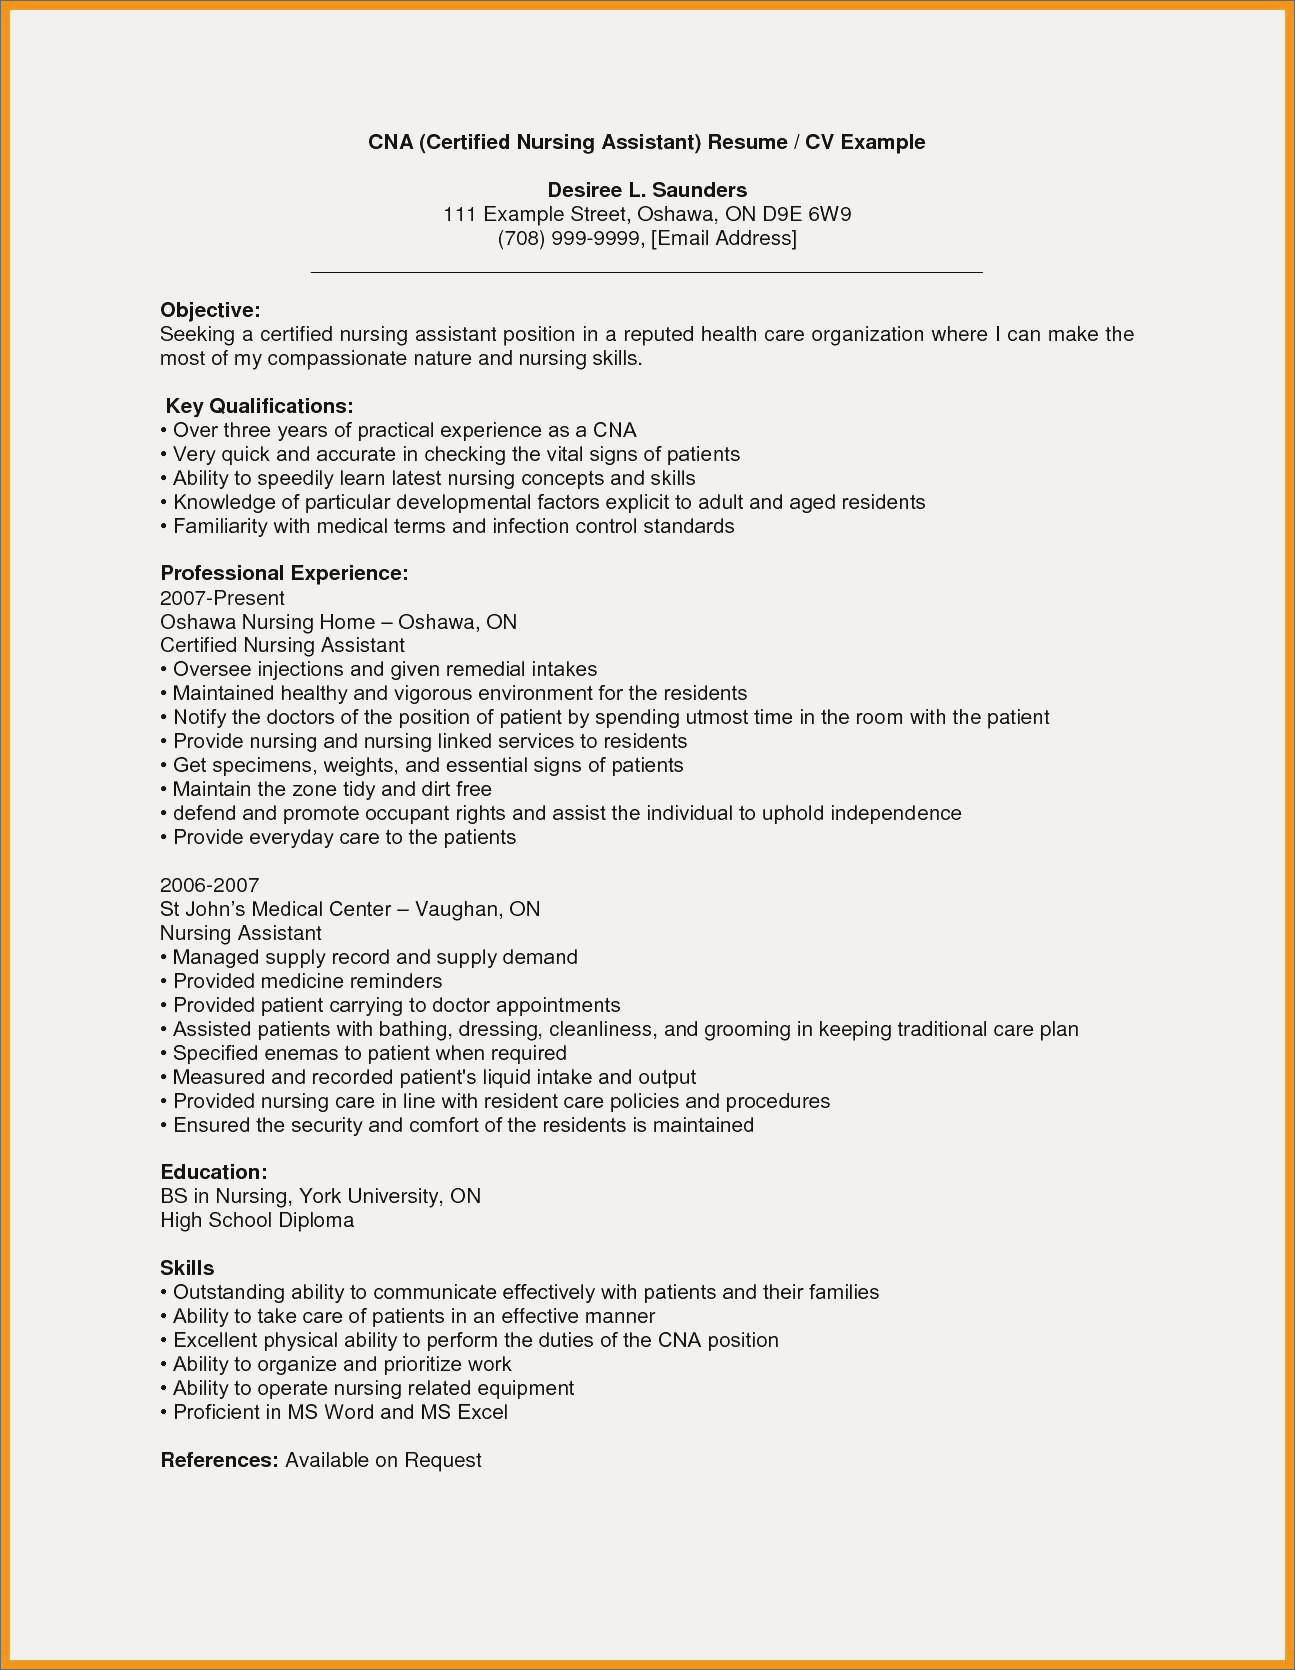 Nurse Aide Resume - Certified Nursing assistant Resume Fresh Cna Resume Examples with